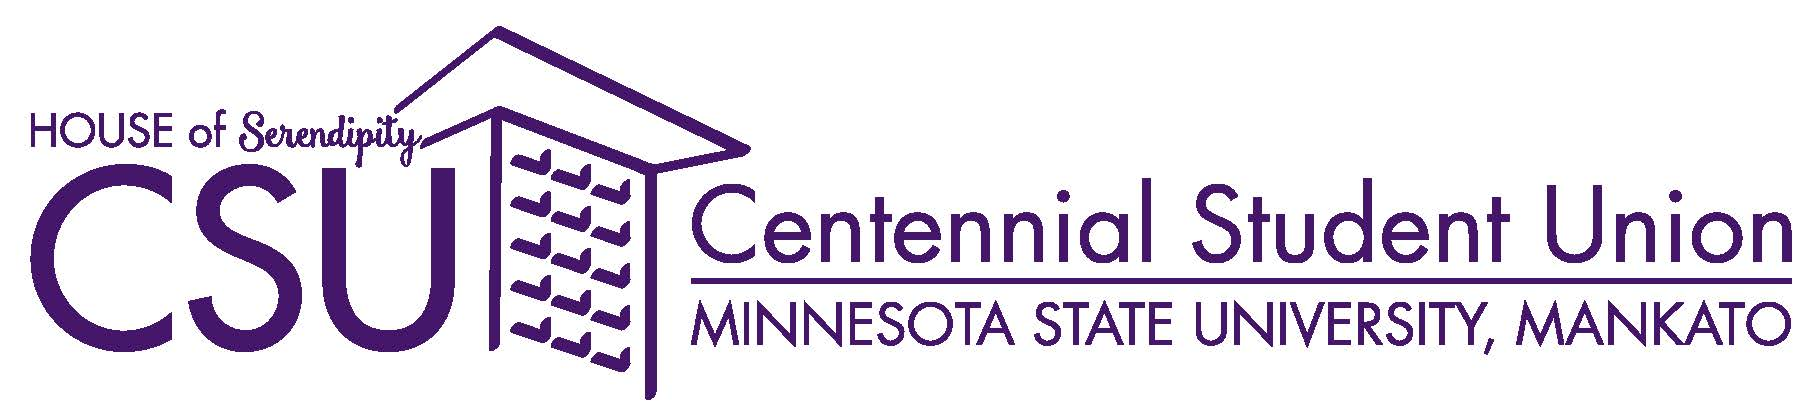 Centennial Student Union at Minnesota State University, Mankato